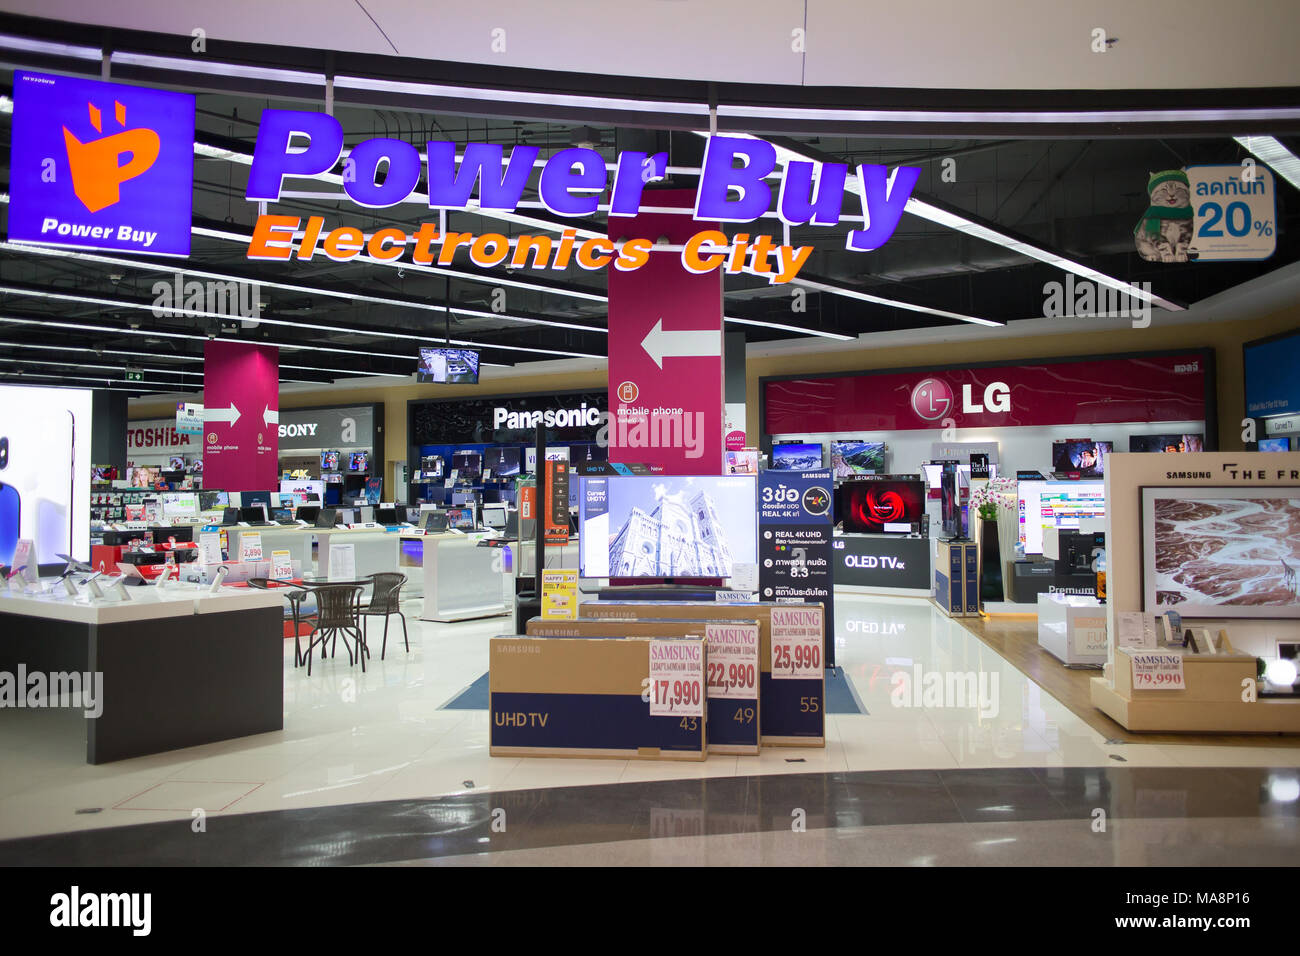 CHIANG MAI, THAILAND -MARCH 30 2018: Powerbuy Eelectronic  Shop inside Central Festival Chiangmai. Photo in Central Festival chiang mai. Stock Photo